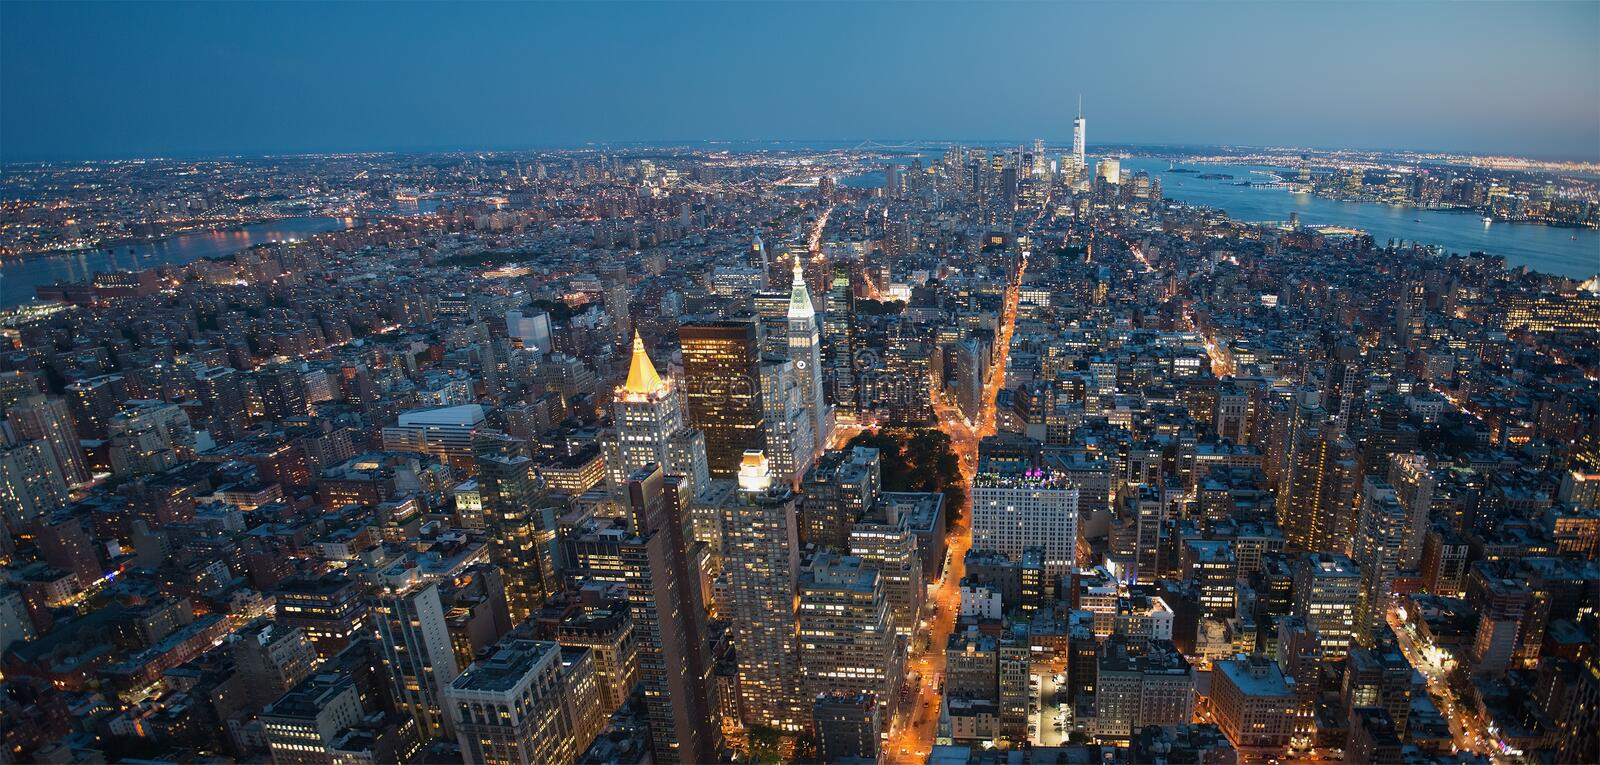 Panorama di notte di New York City fotografia stock